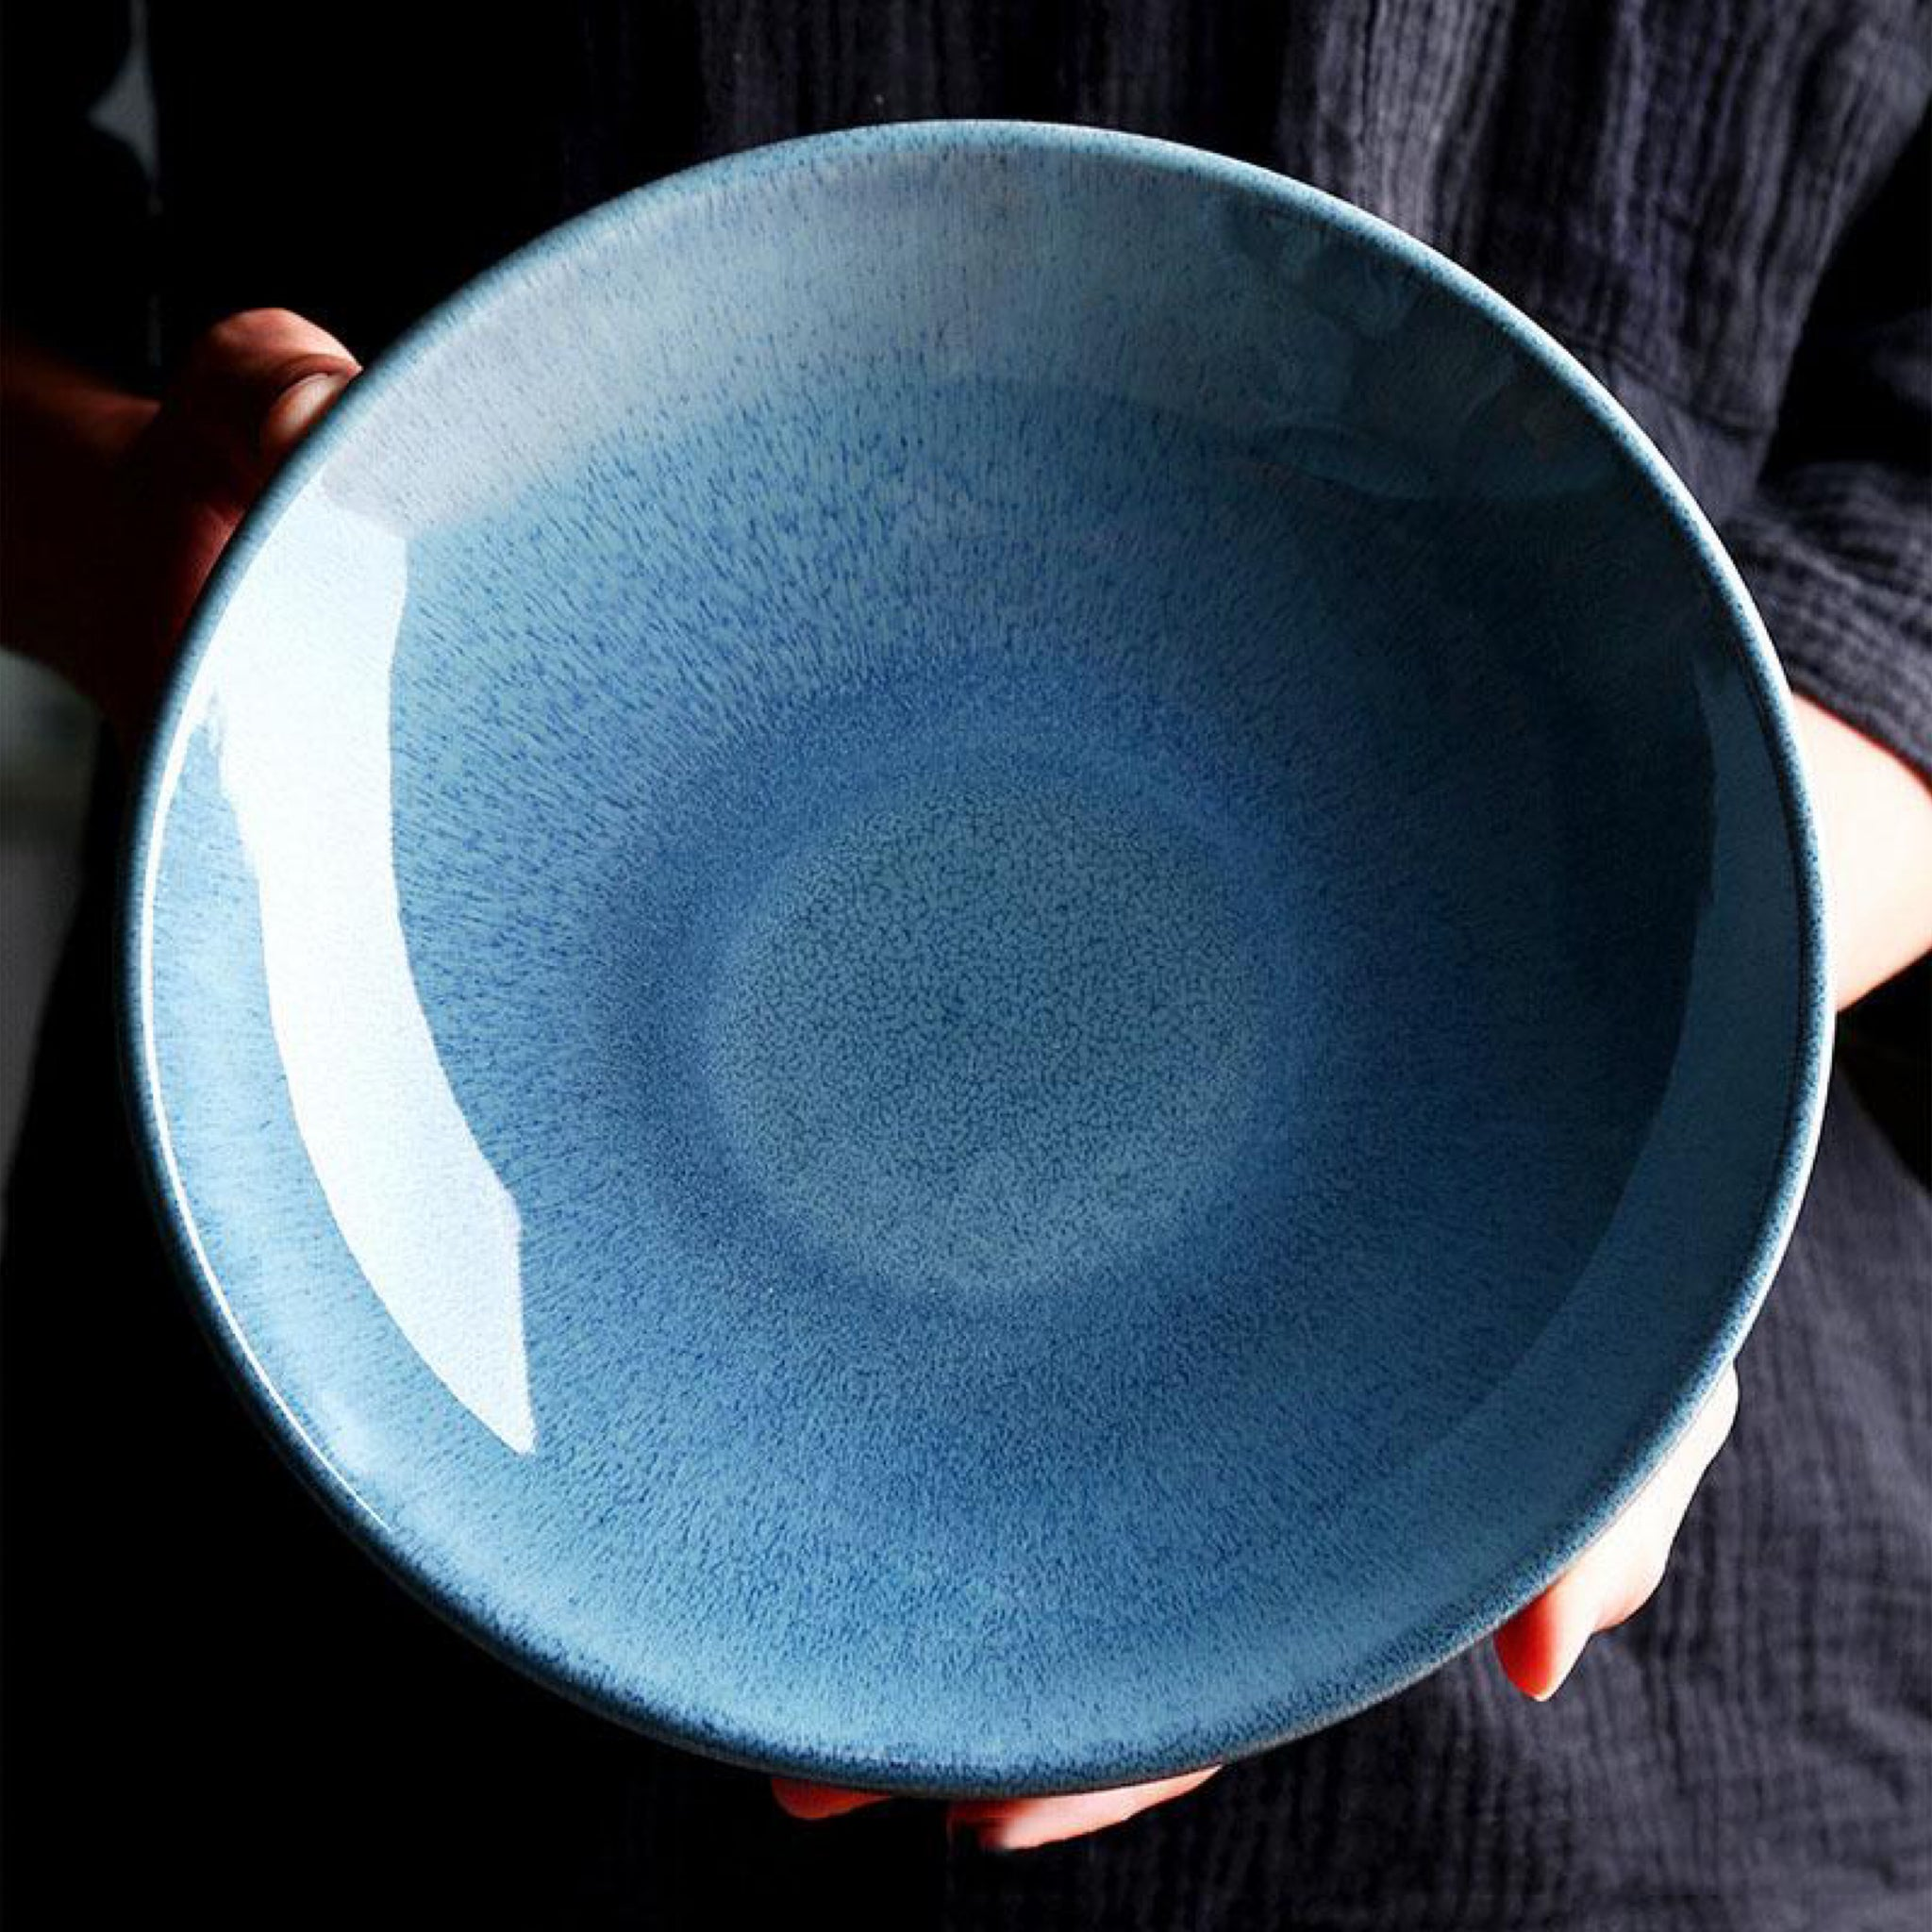 Ceramic bowl kiln glaze blue Japanese 9-inch shallow soup bowl pasta salad bowls Trend